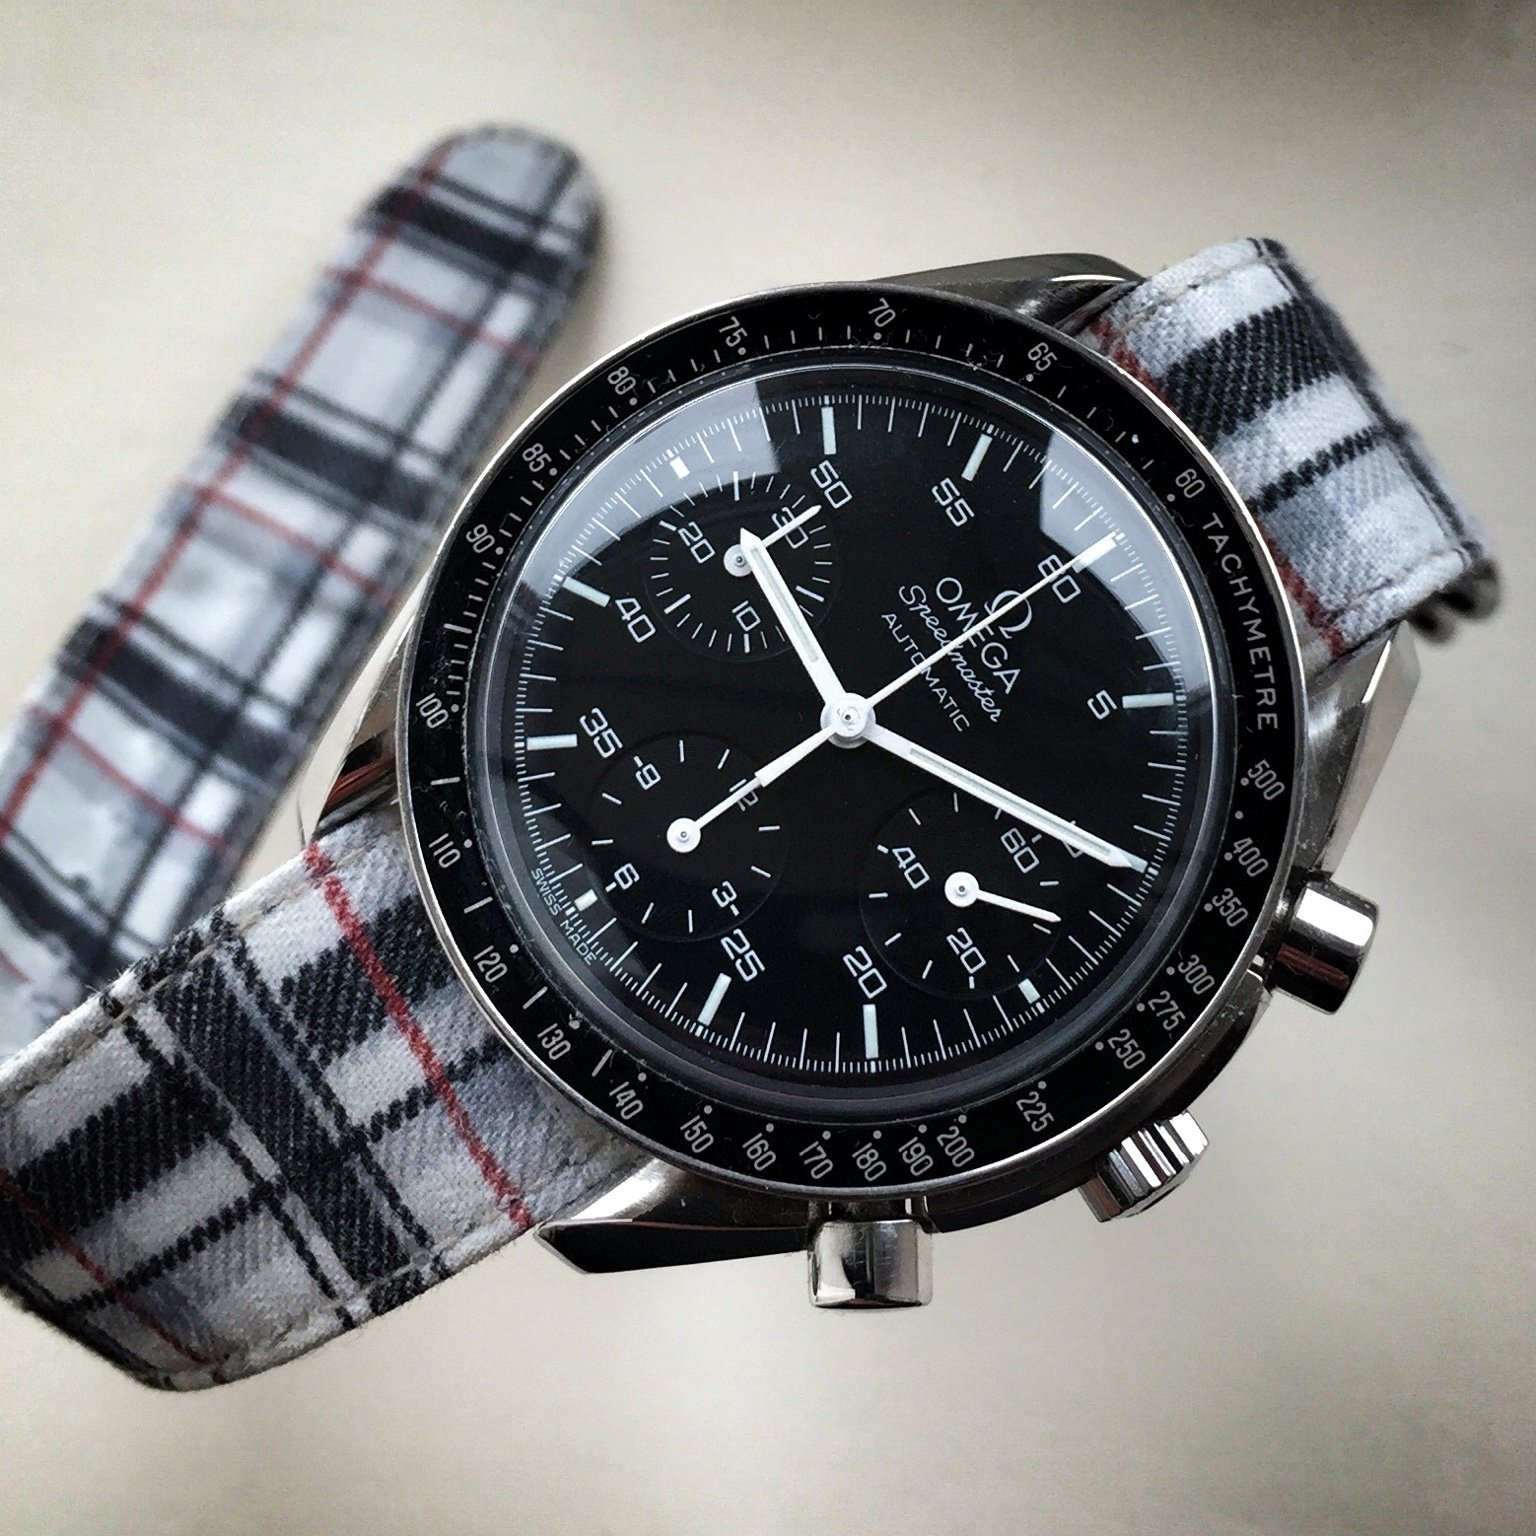 doctor seiko img chrono watches tachymeter